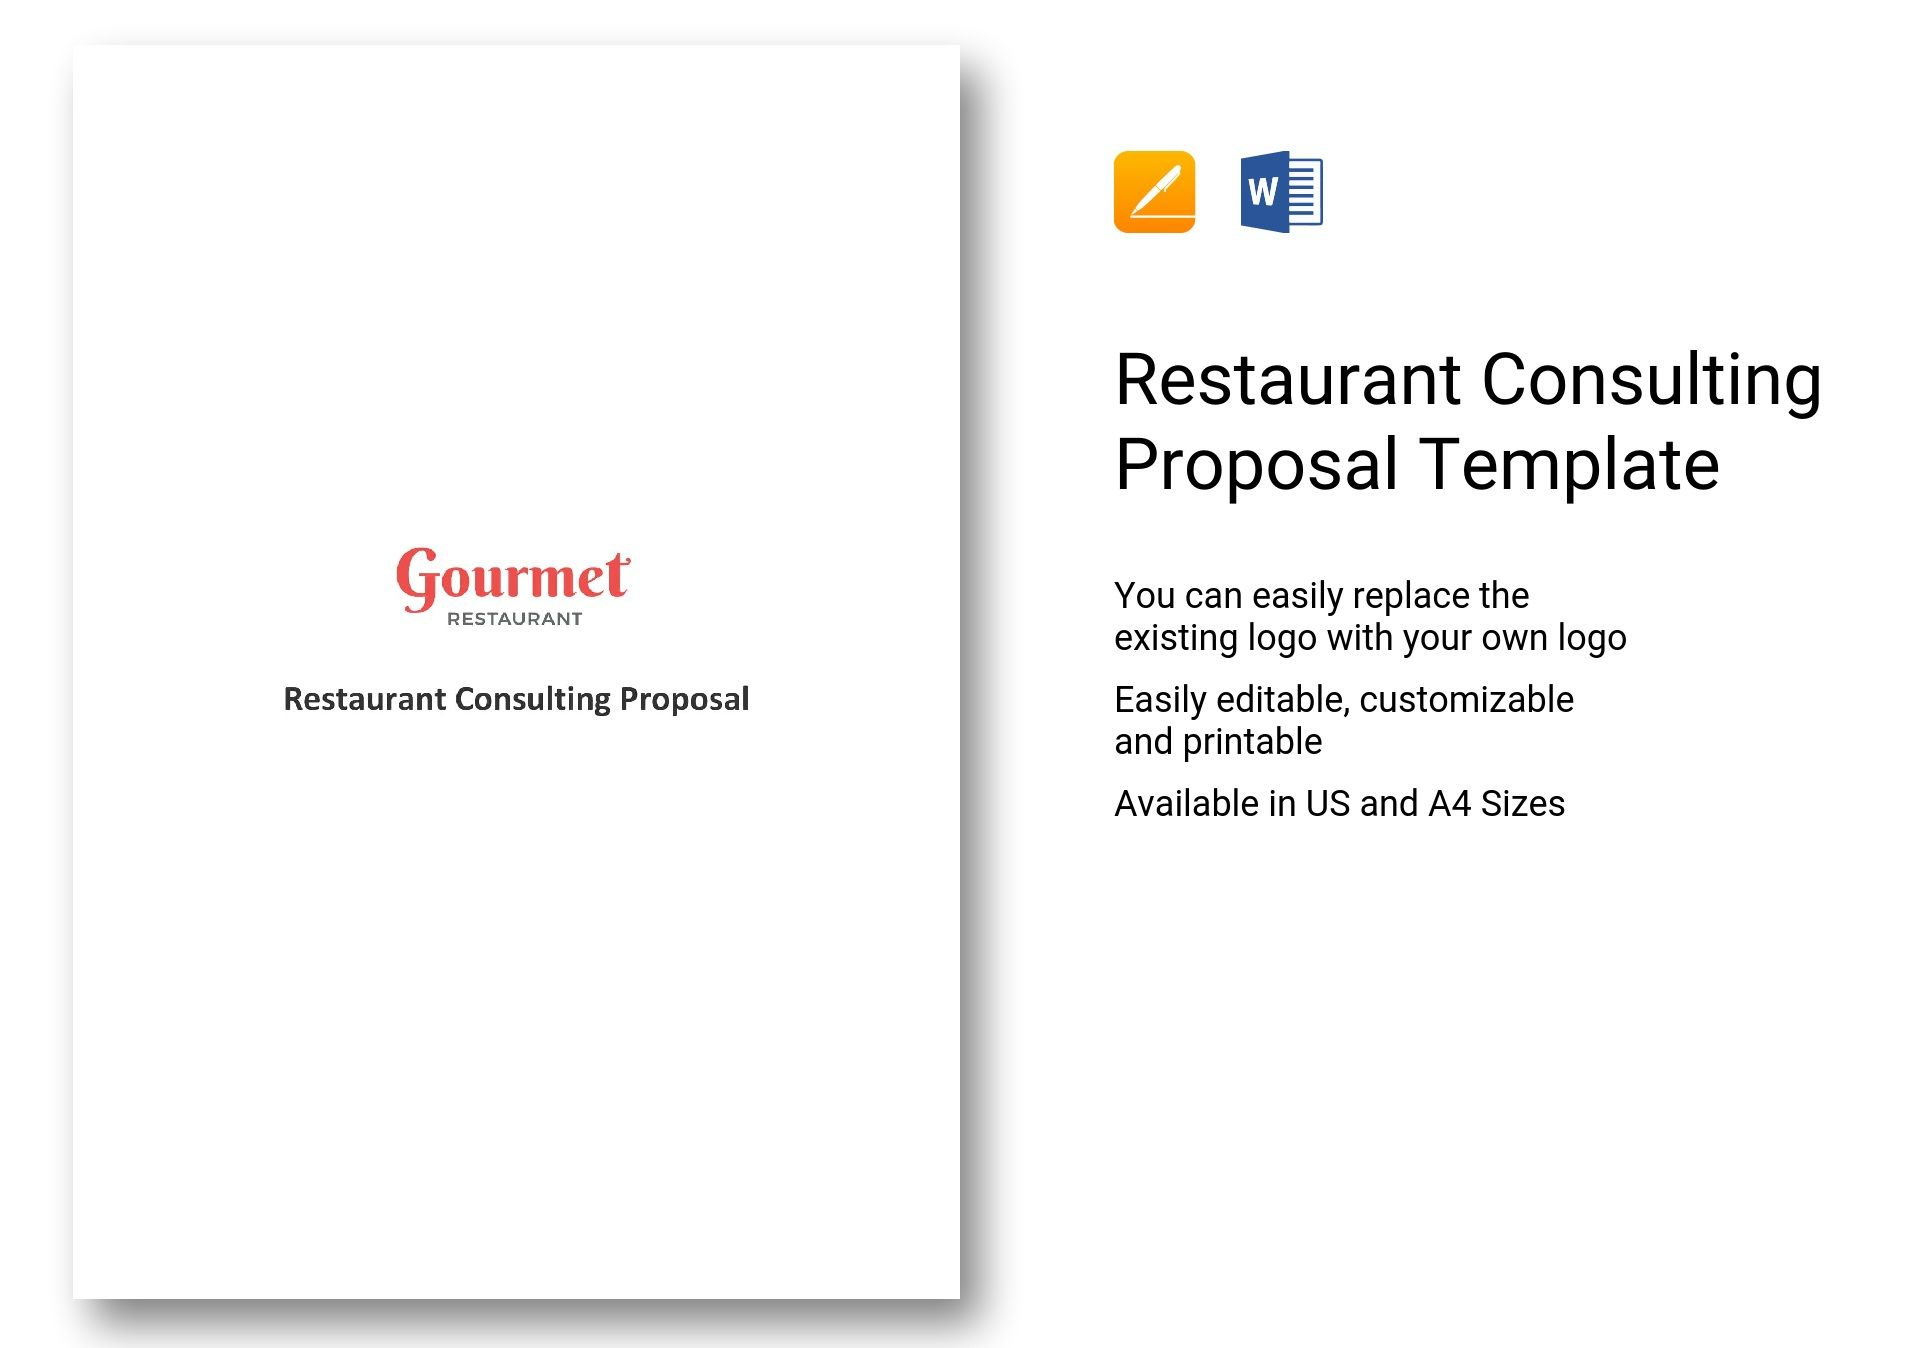 Restaurant Consulting Proposal